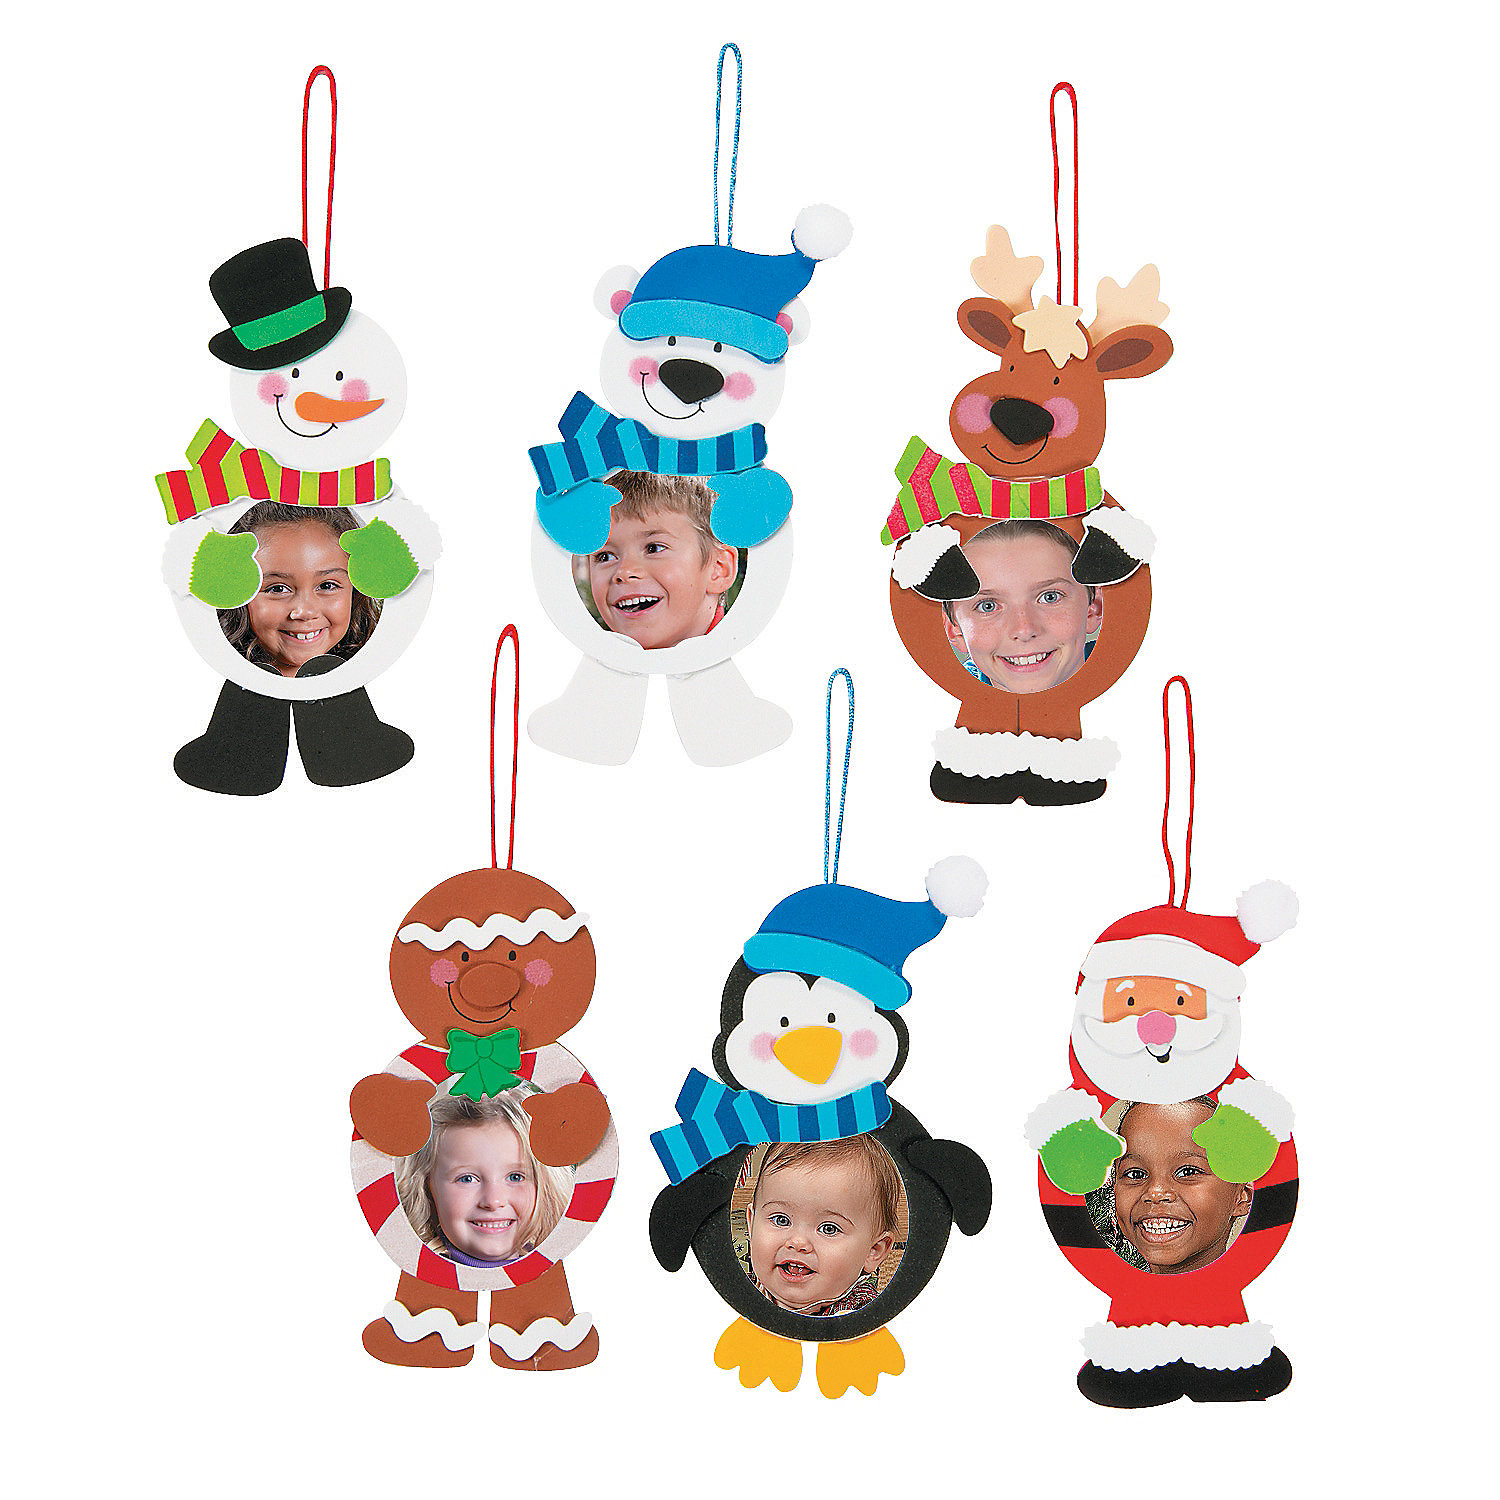 Christmas character picture frame ornament craft kit for Photo frame ornament craft